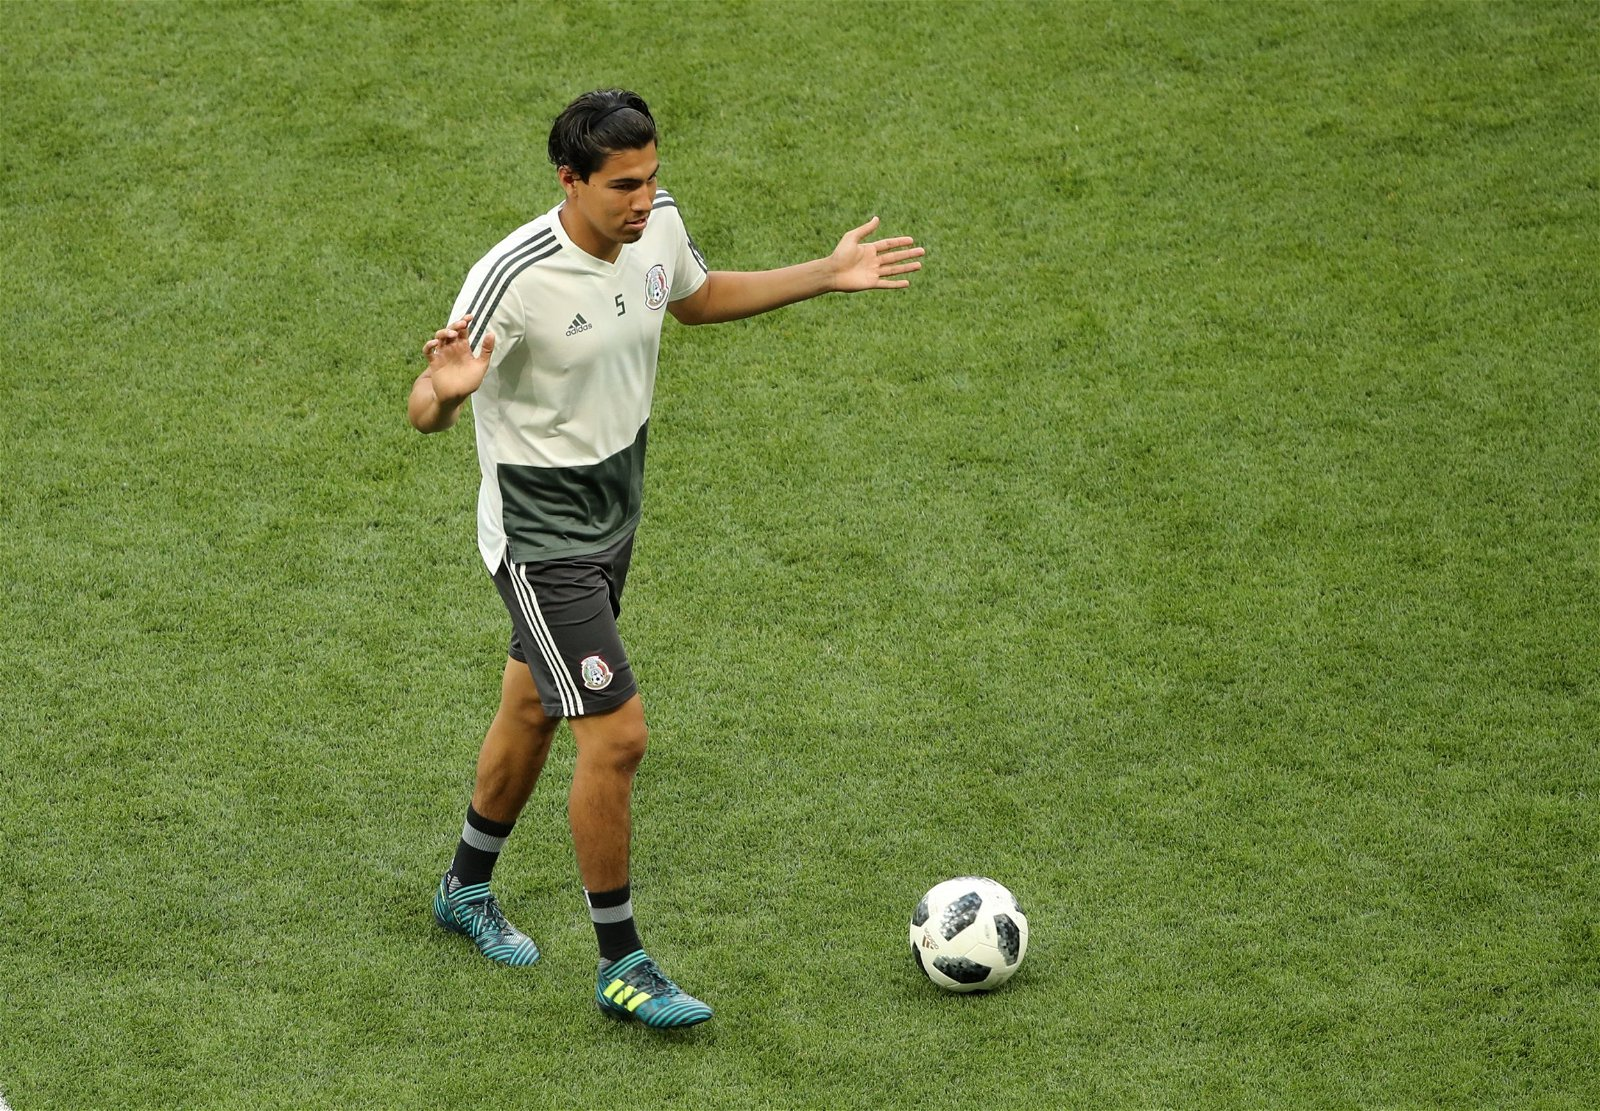 diego reyes dribbles the ball in mexico training